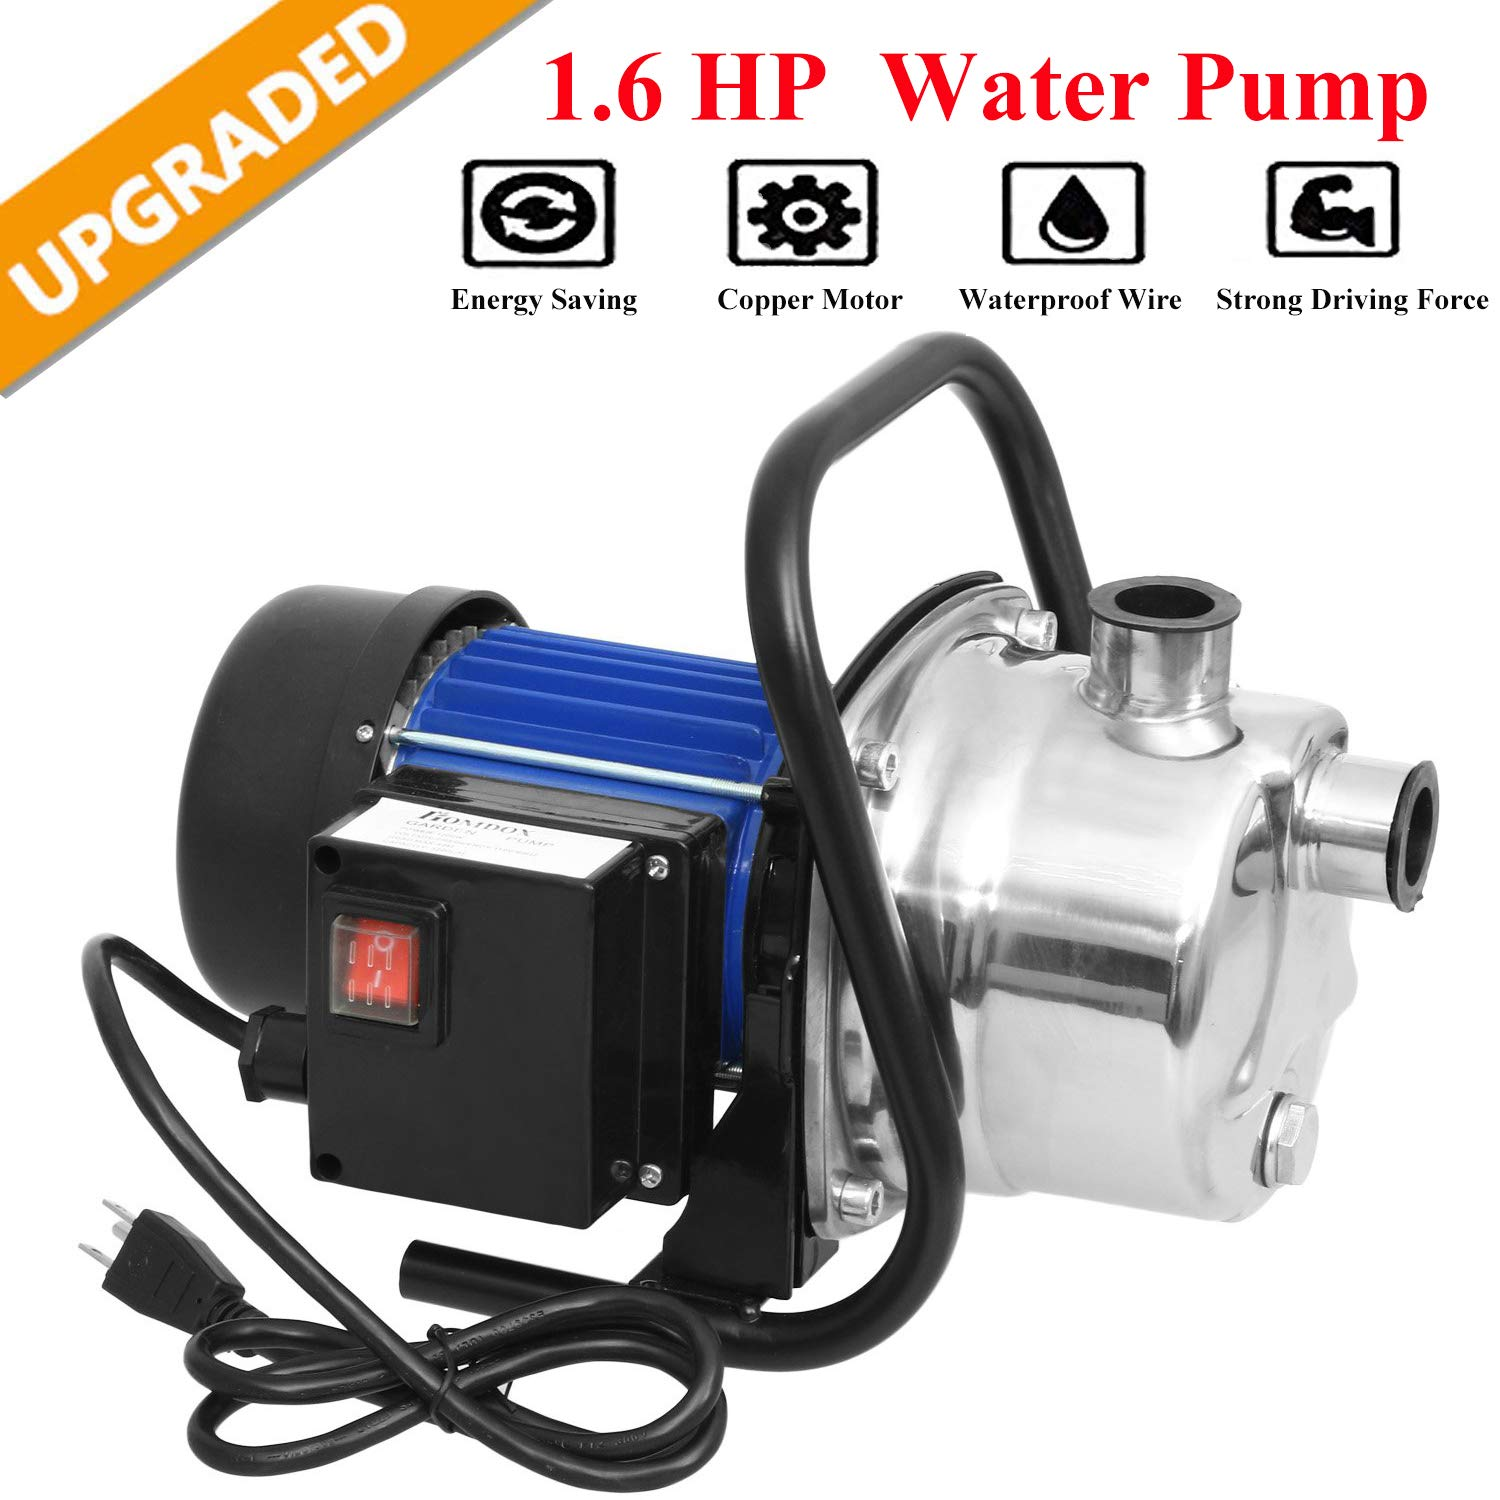 Hurbo 1.6HP Portable Stainless Steel Lawn Sprinkling Pump Water Pump Shallow Well Pump for Garden Irrigation and Pressure Booster